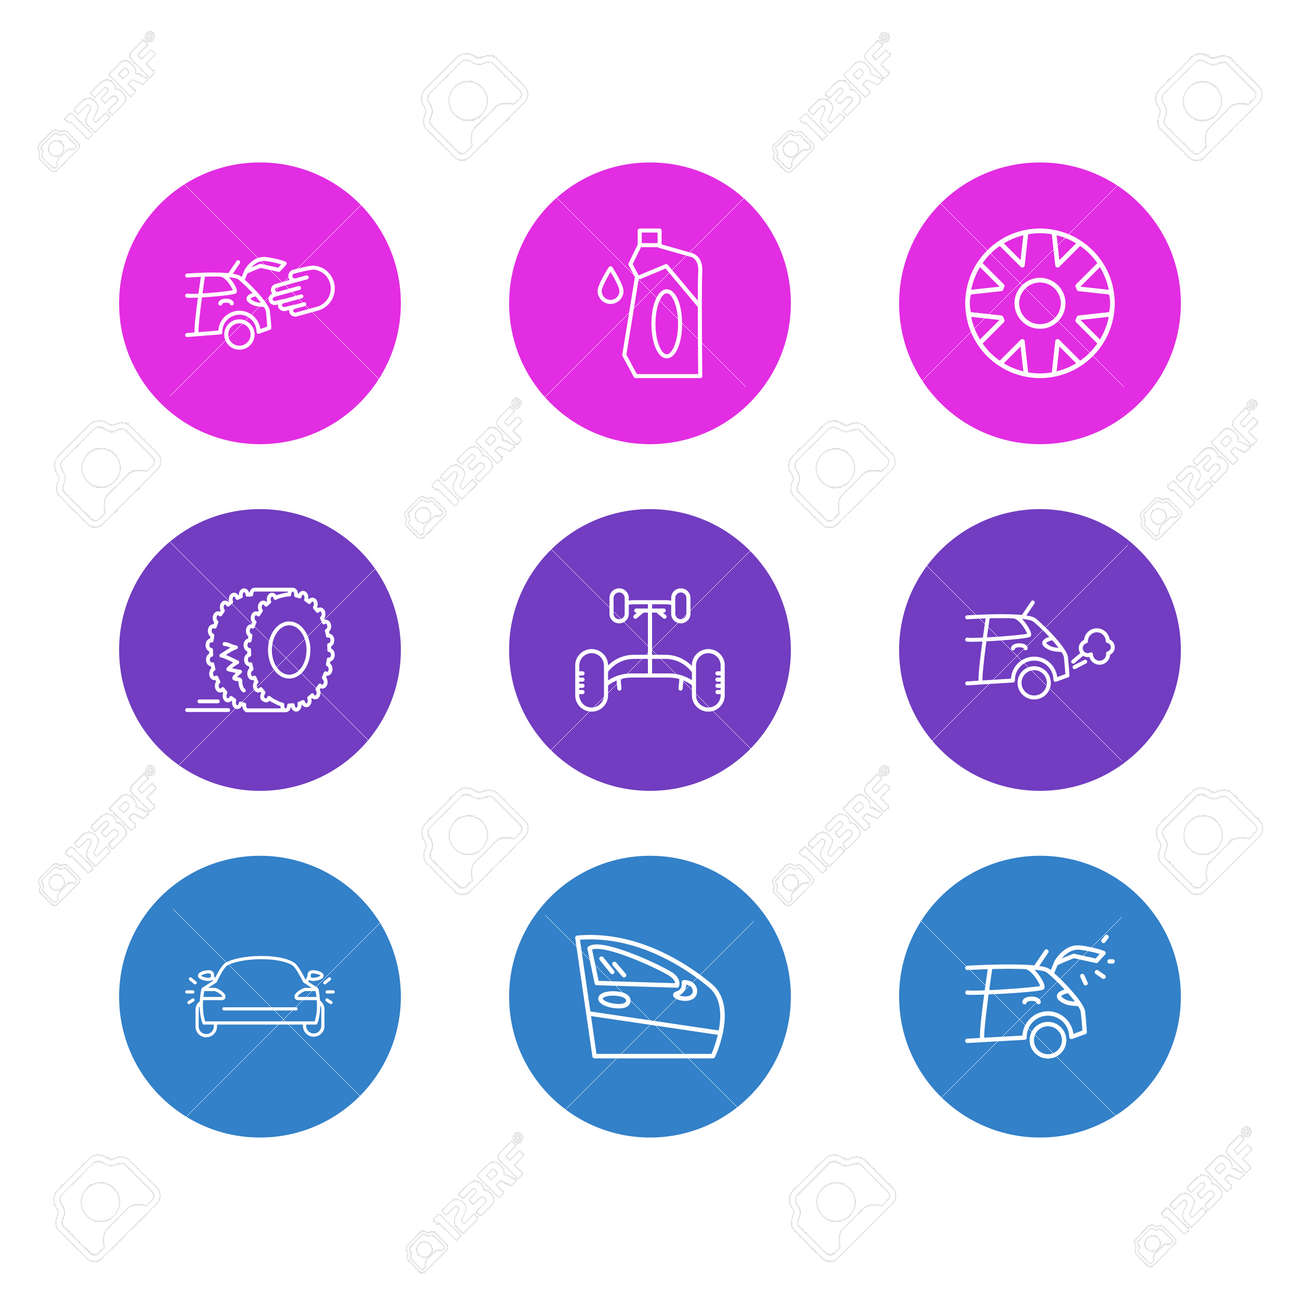 Vector illustration of 9 car icons line style. Editable set of car chassis, hubcap, door and other icon elements. - 158380336